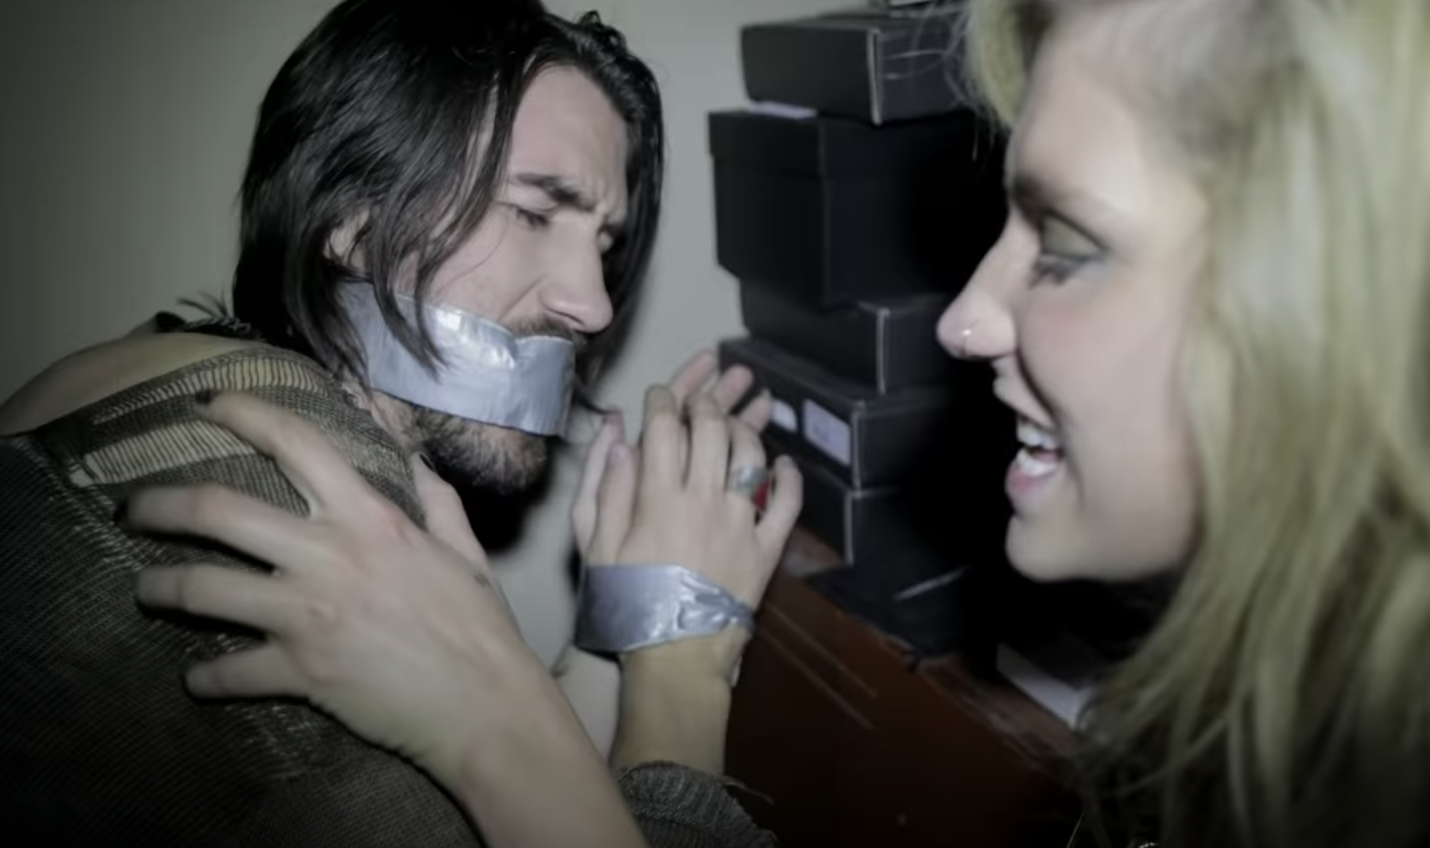 Kesha leans next to a man who is tied up and duct taped